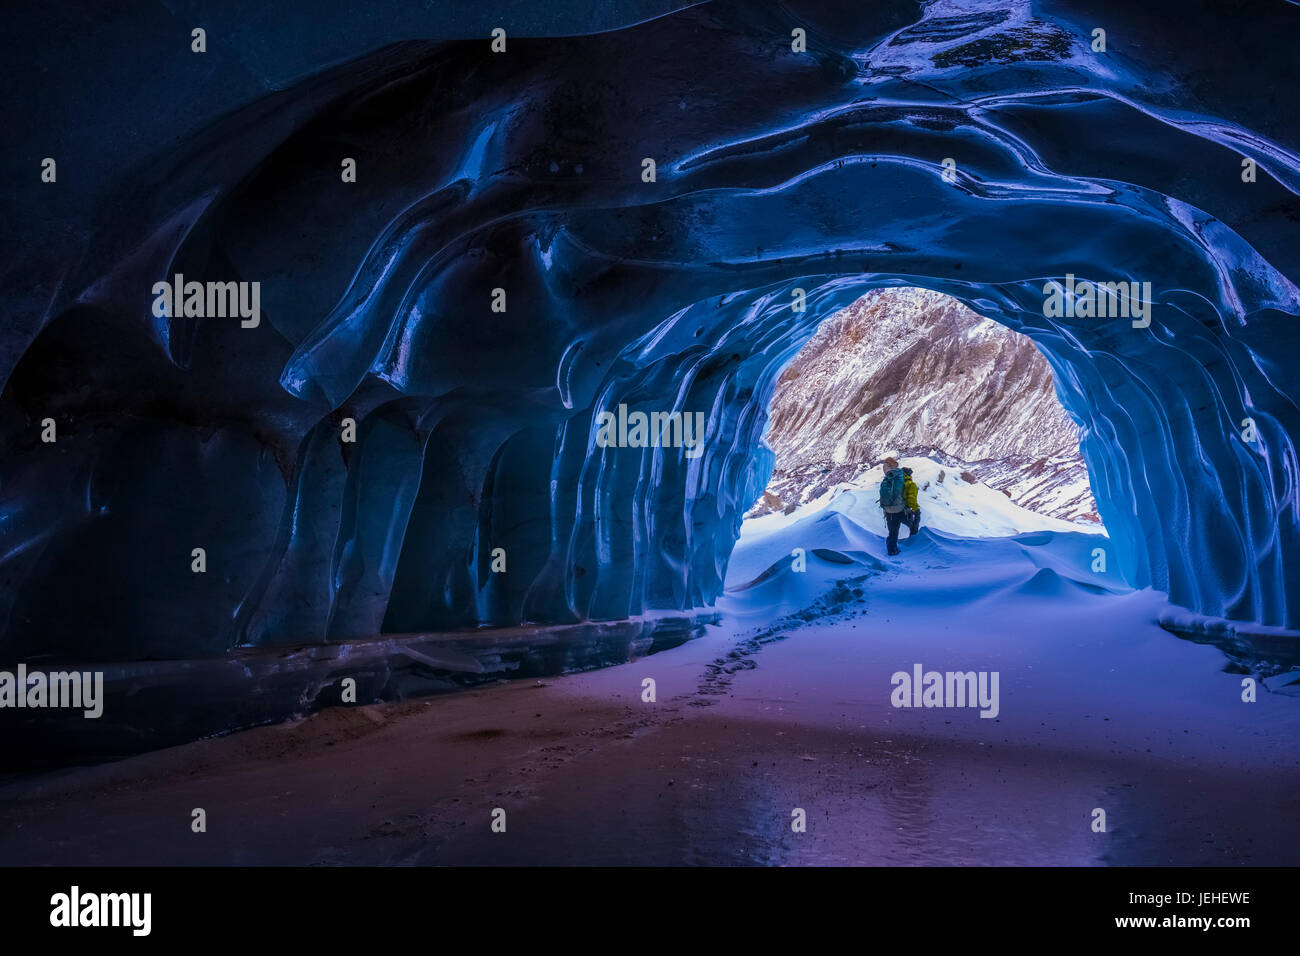 A hiker exits a small ice cave while exploring the terminal moraine of Black Rapids Glacier in the winter; Alaska, - Stock Image